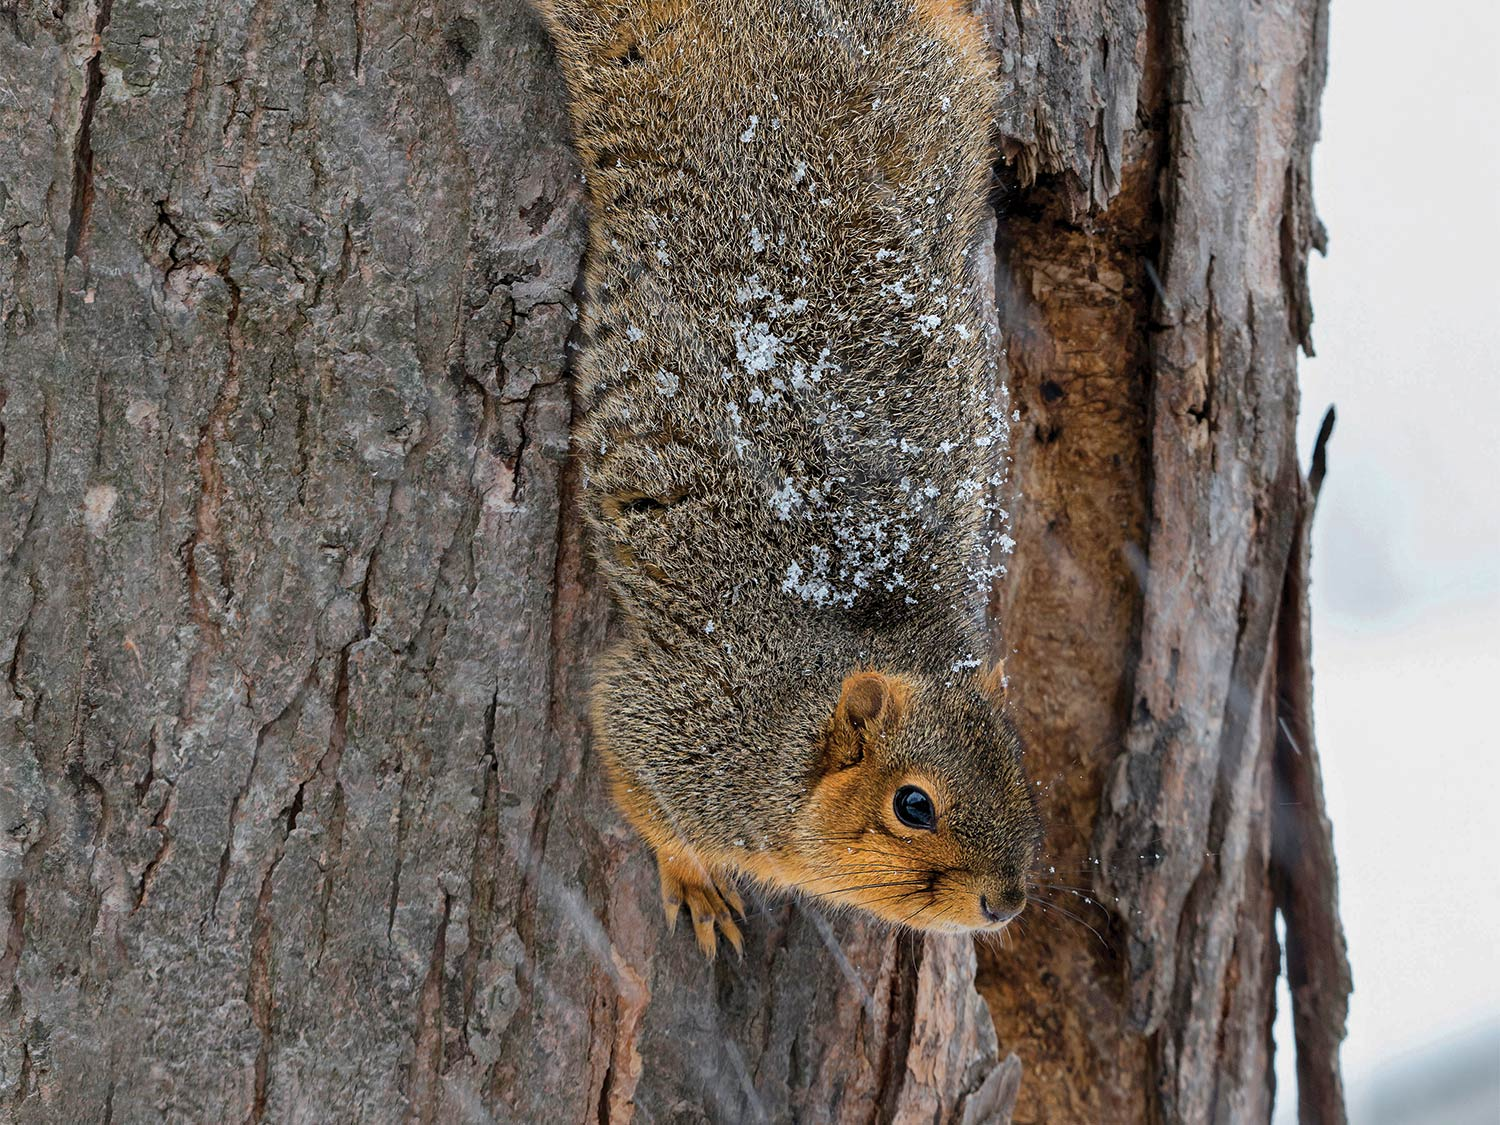 A squirrel climbs down the side of a tree in the snow.